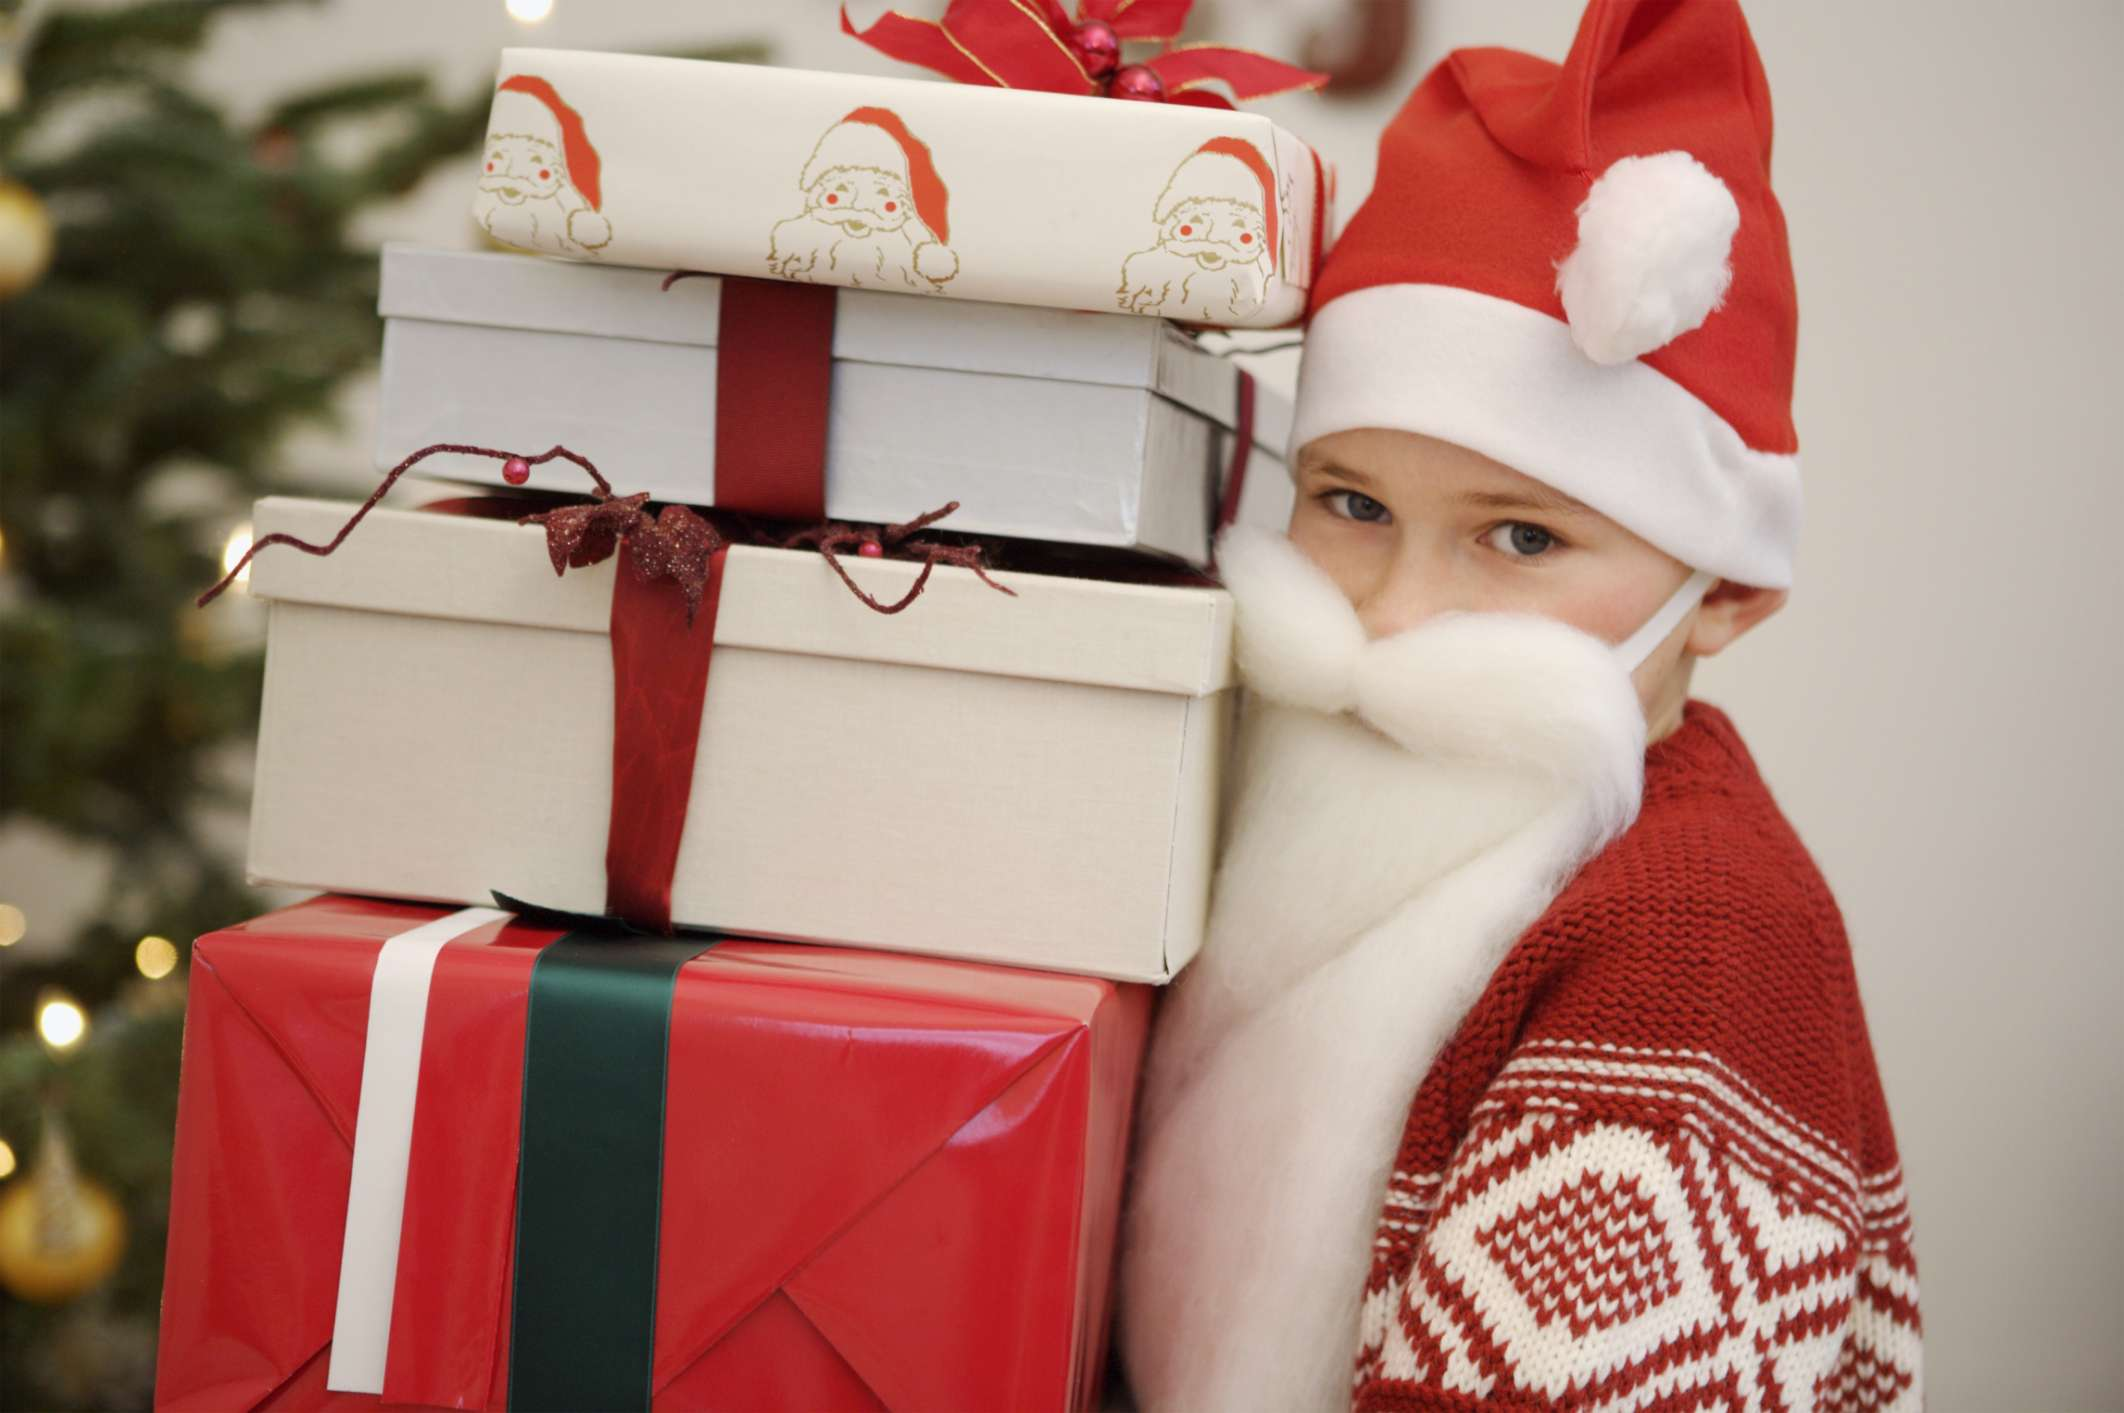 a boy dressed as santa holding a stack of gifts